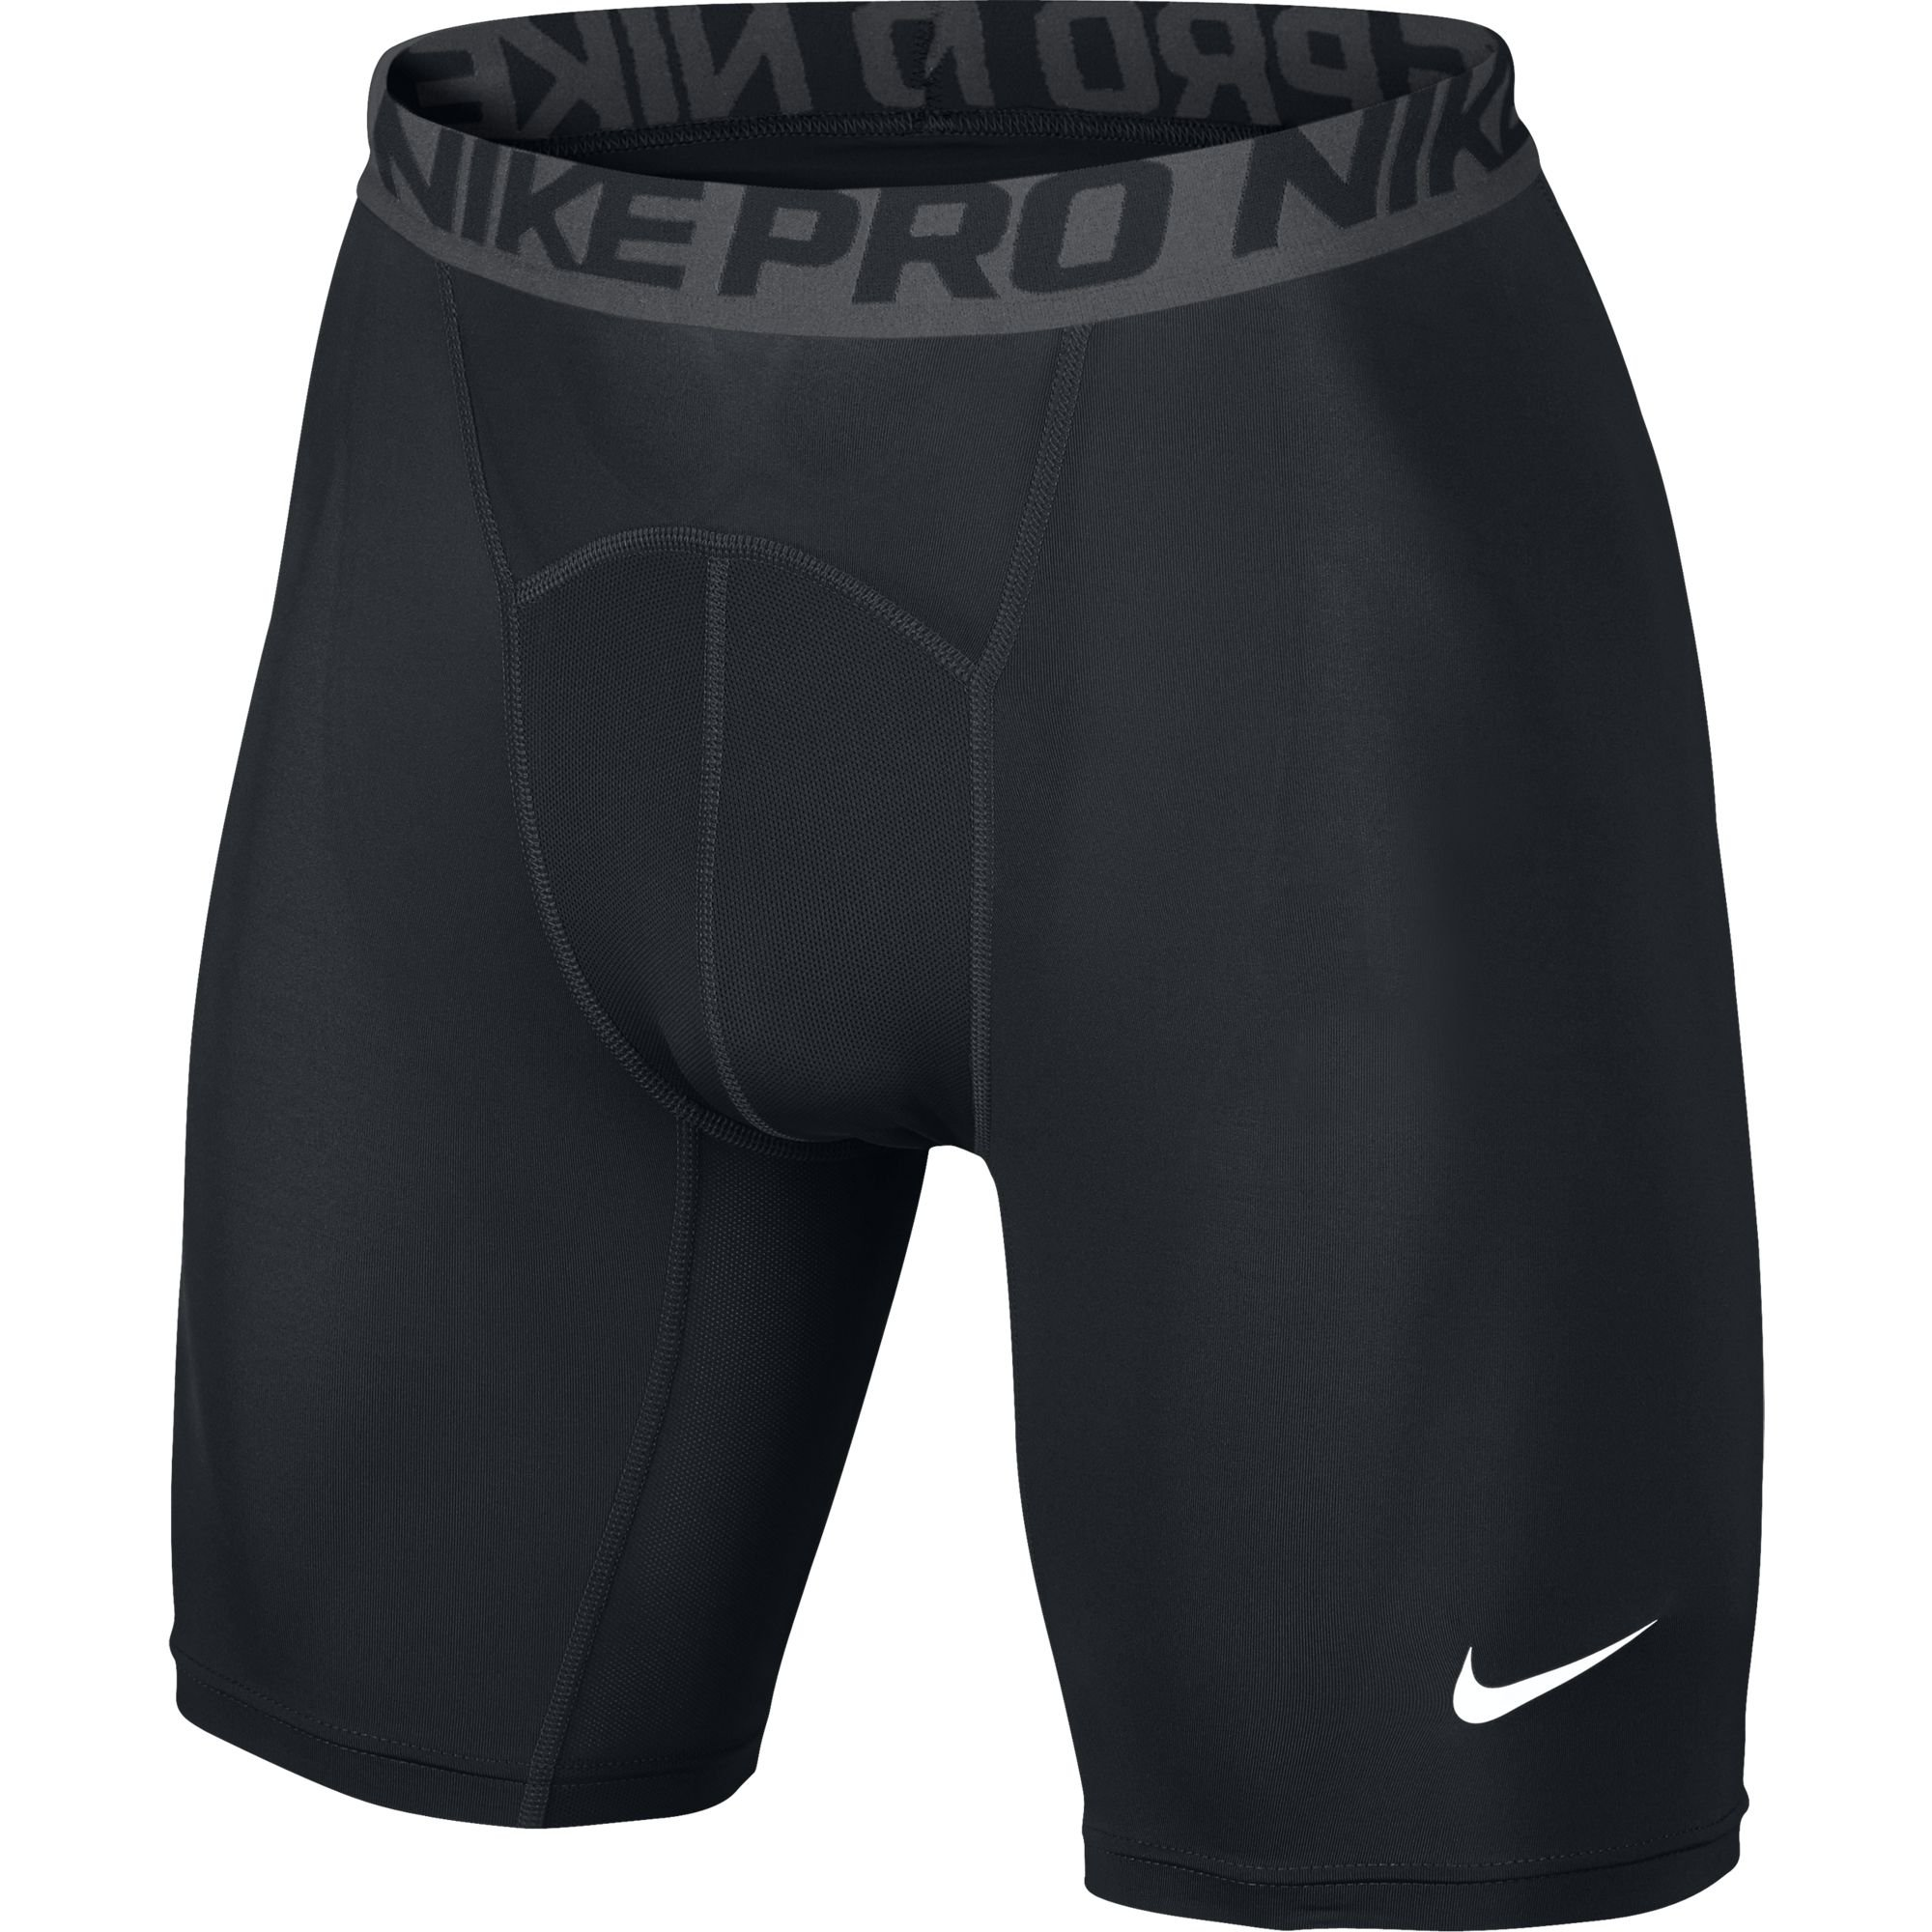 NIKE Men's Pro Shorts, Black/Dark Grey/White, Large